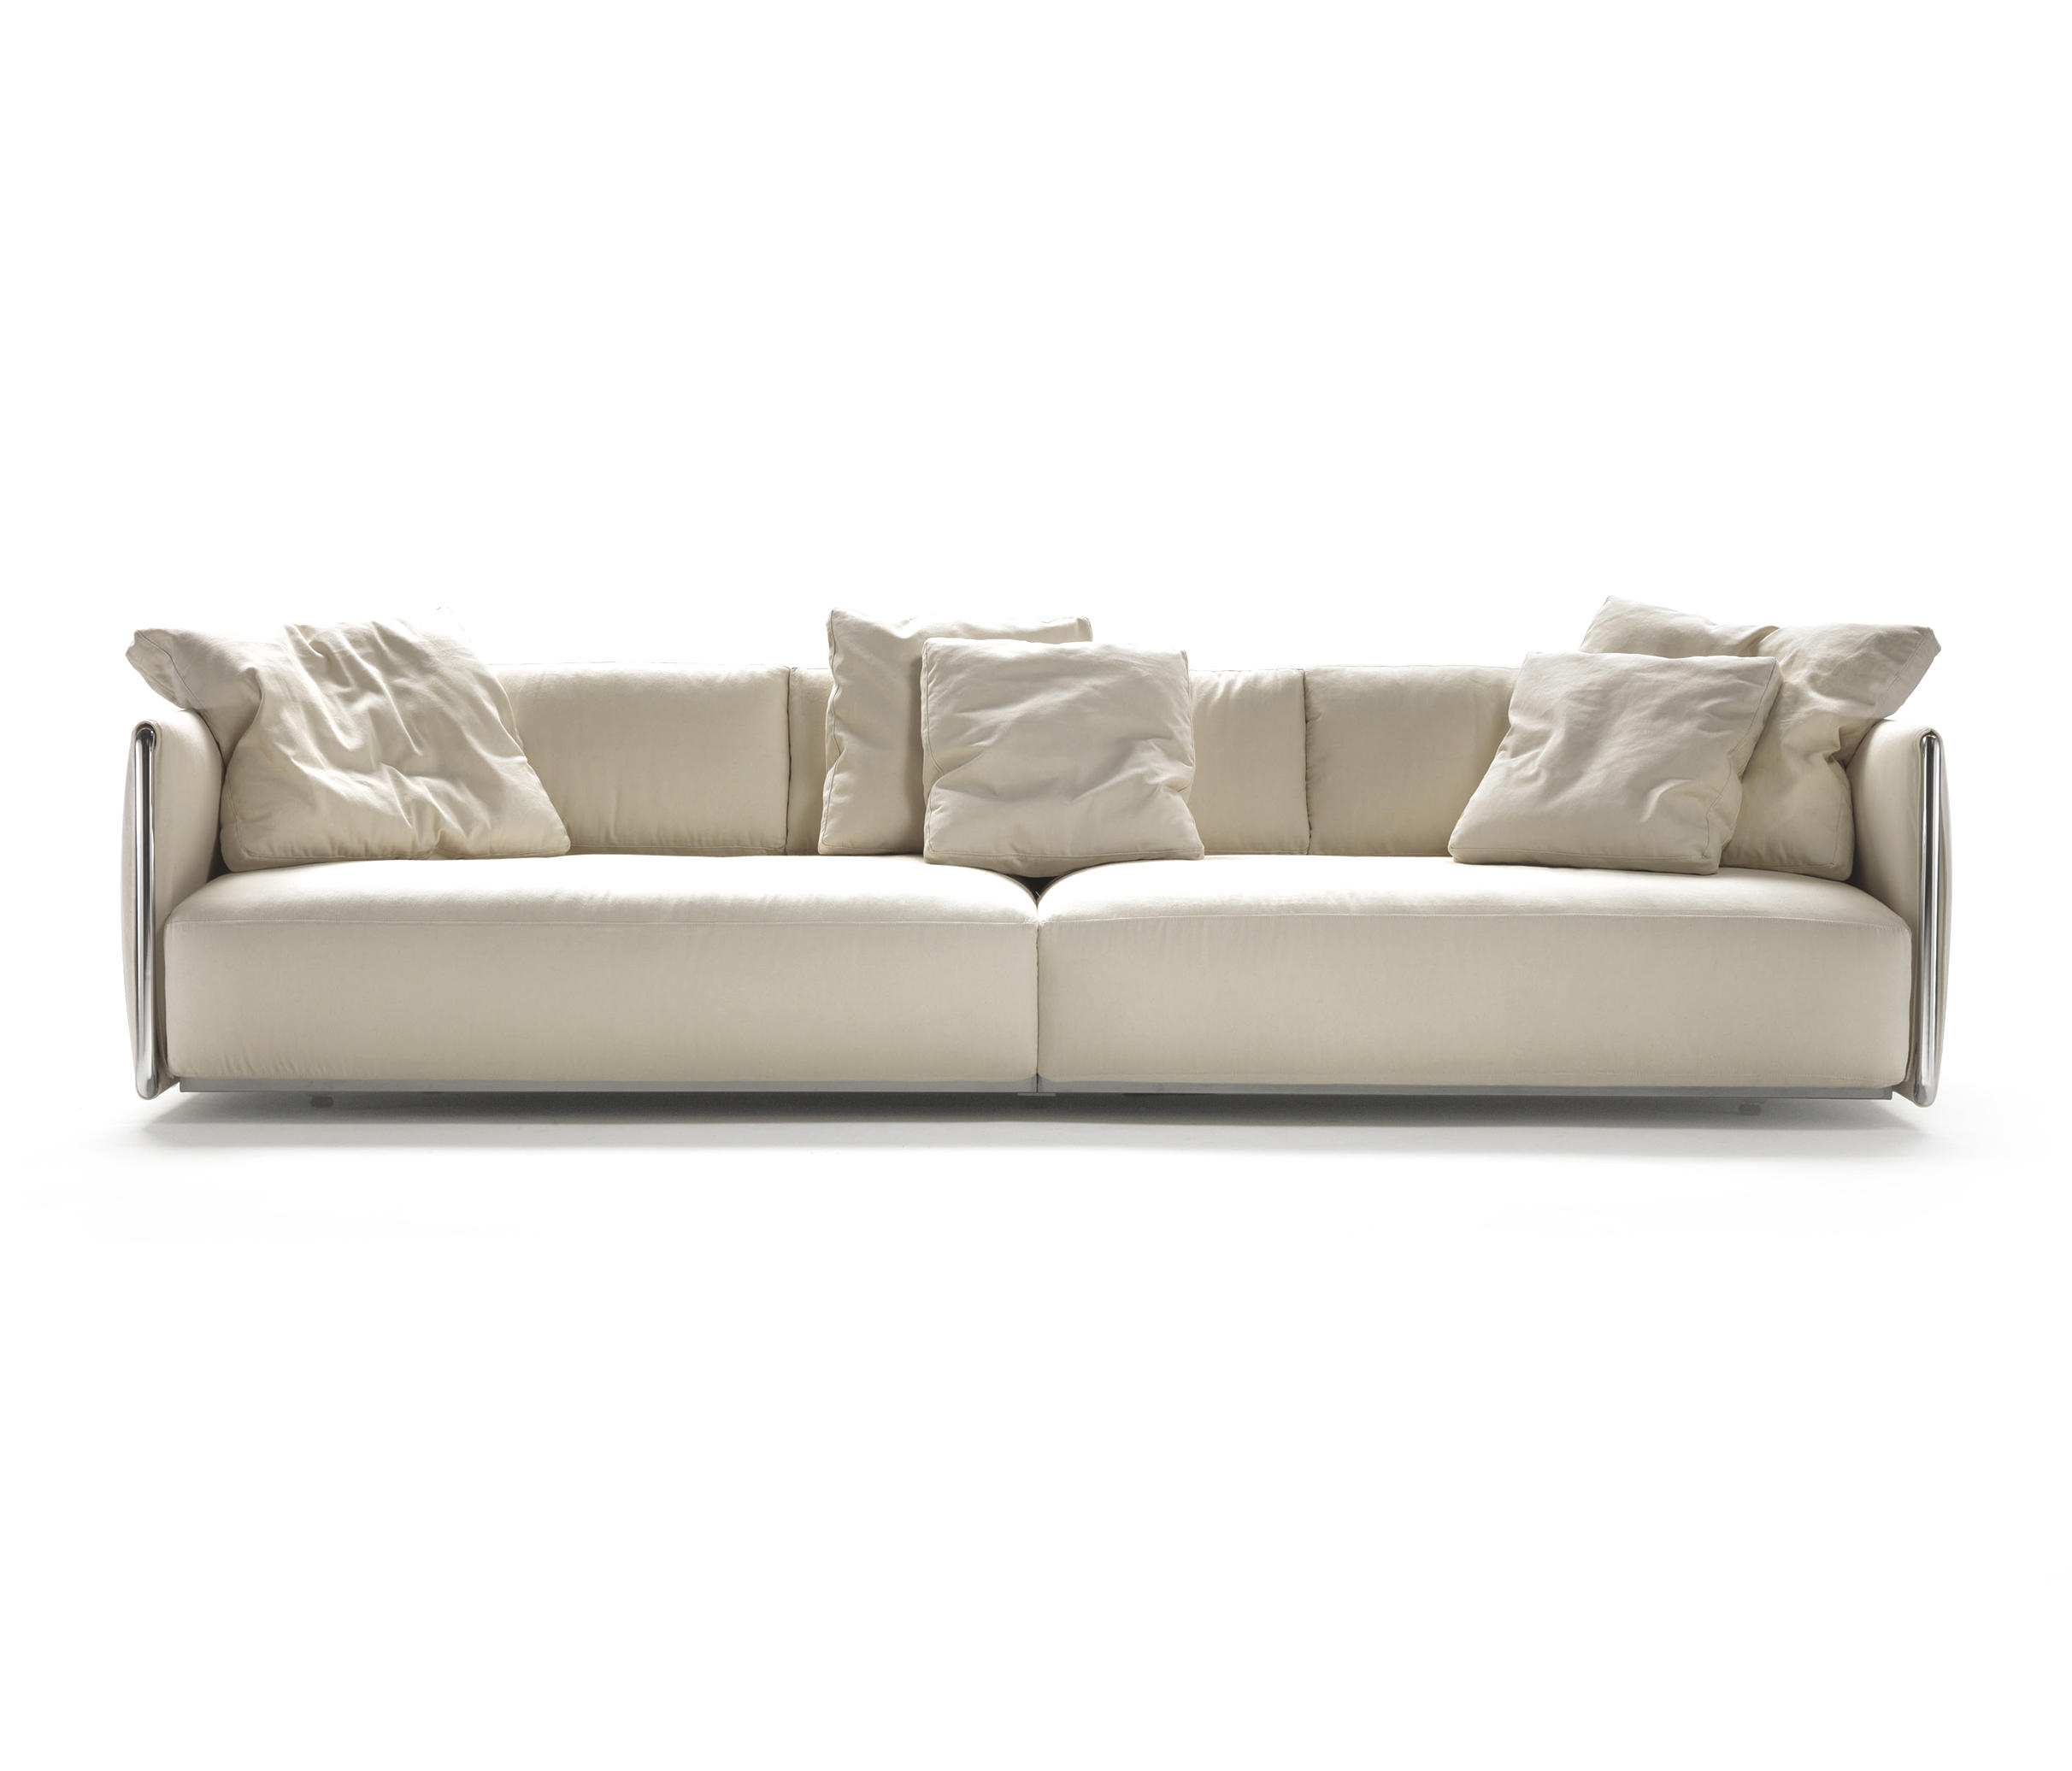 Canapé Shabby Chic edmond sofa - sofas from flexform | architonic